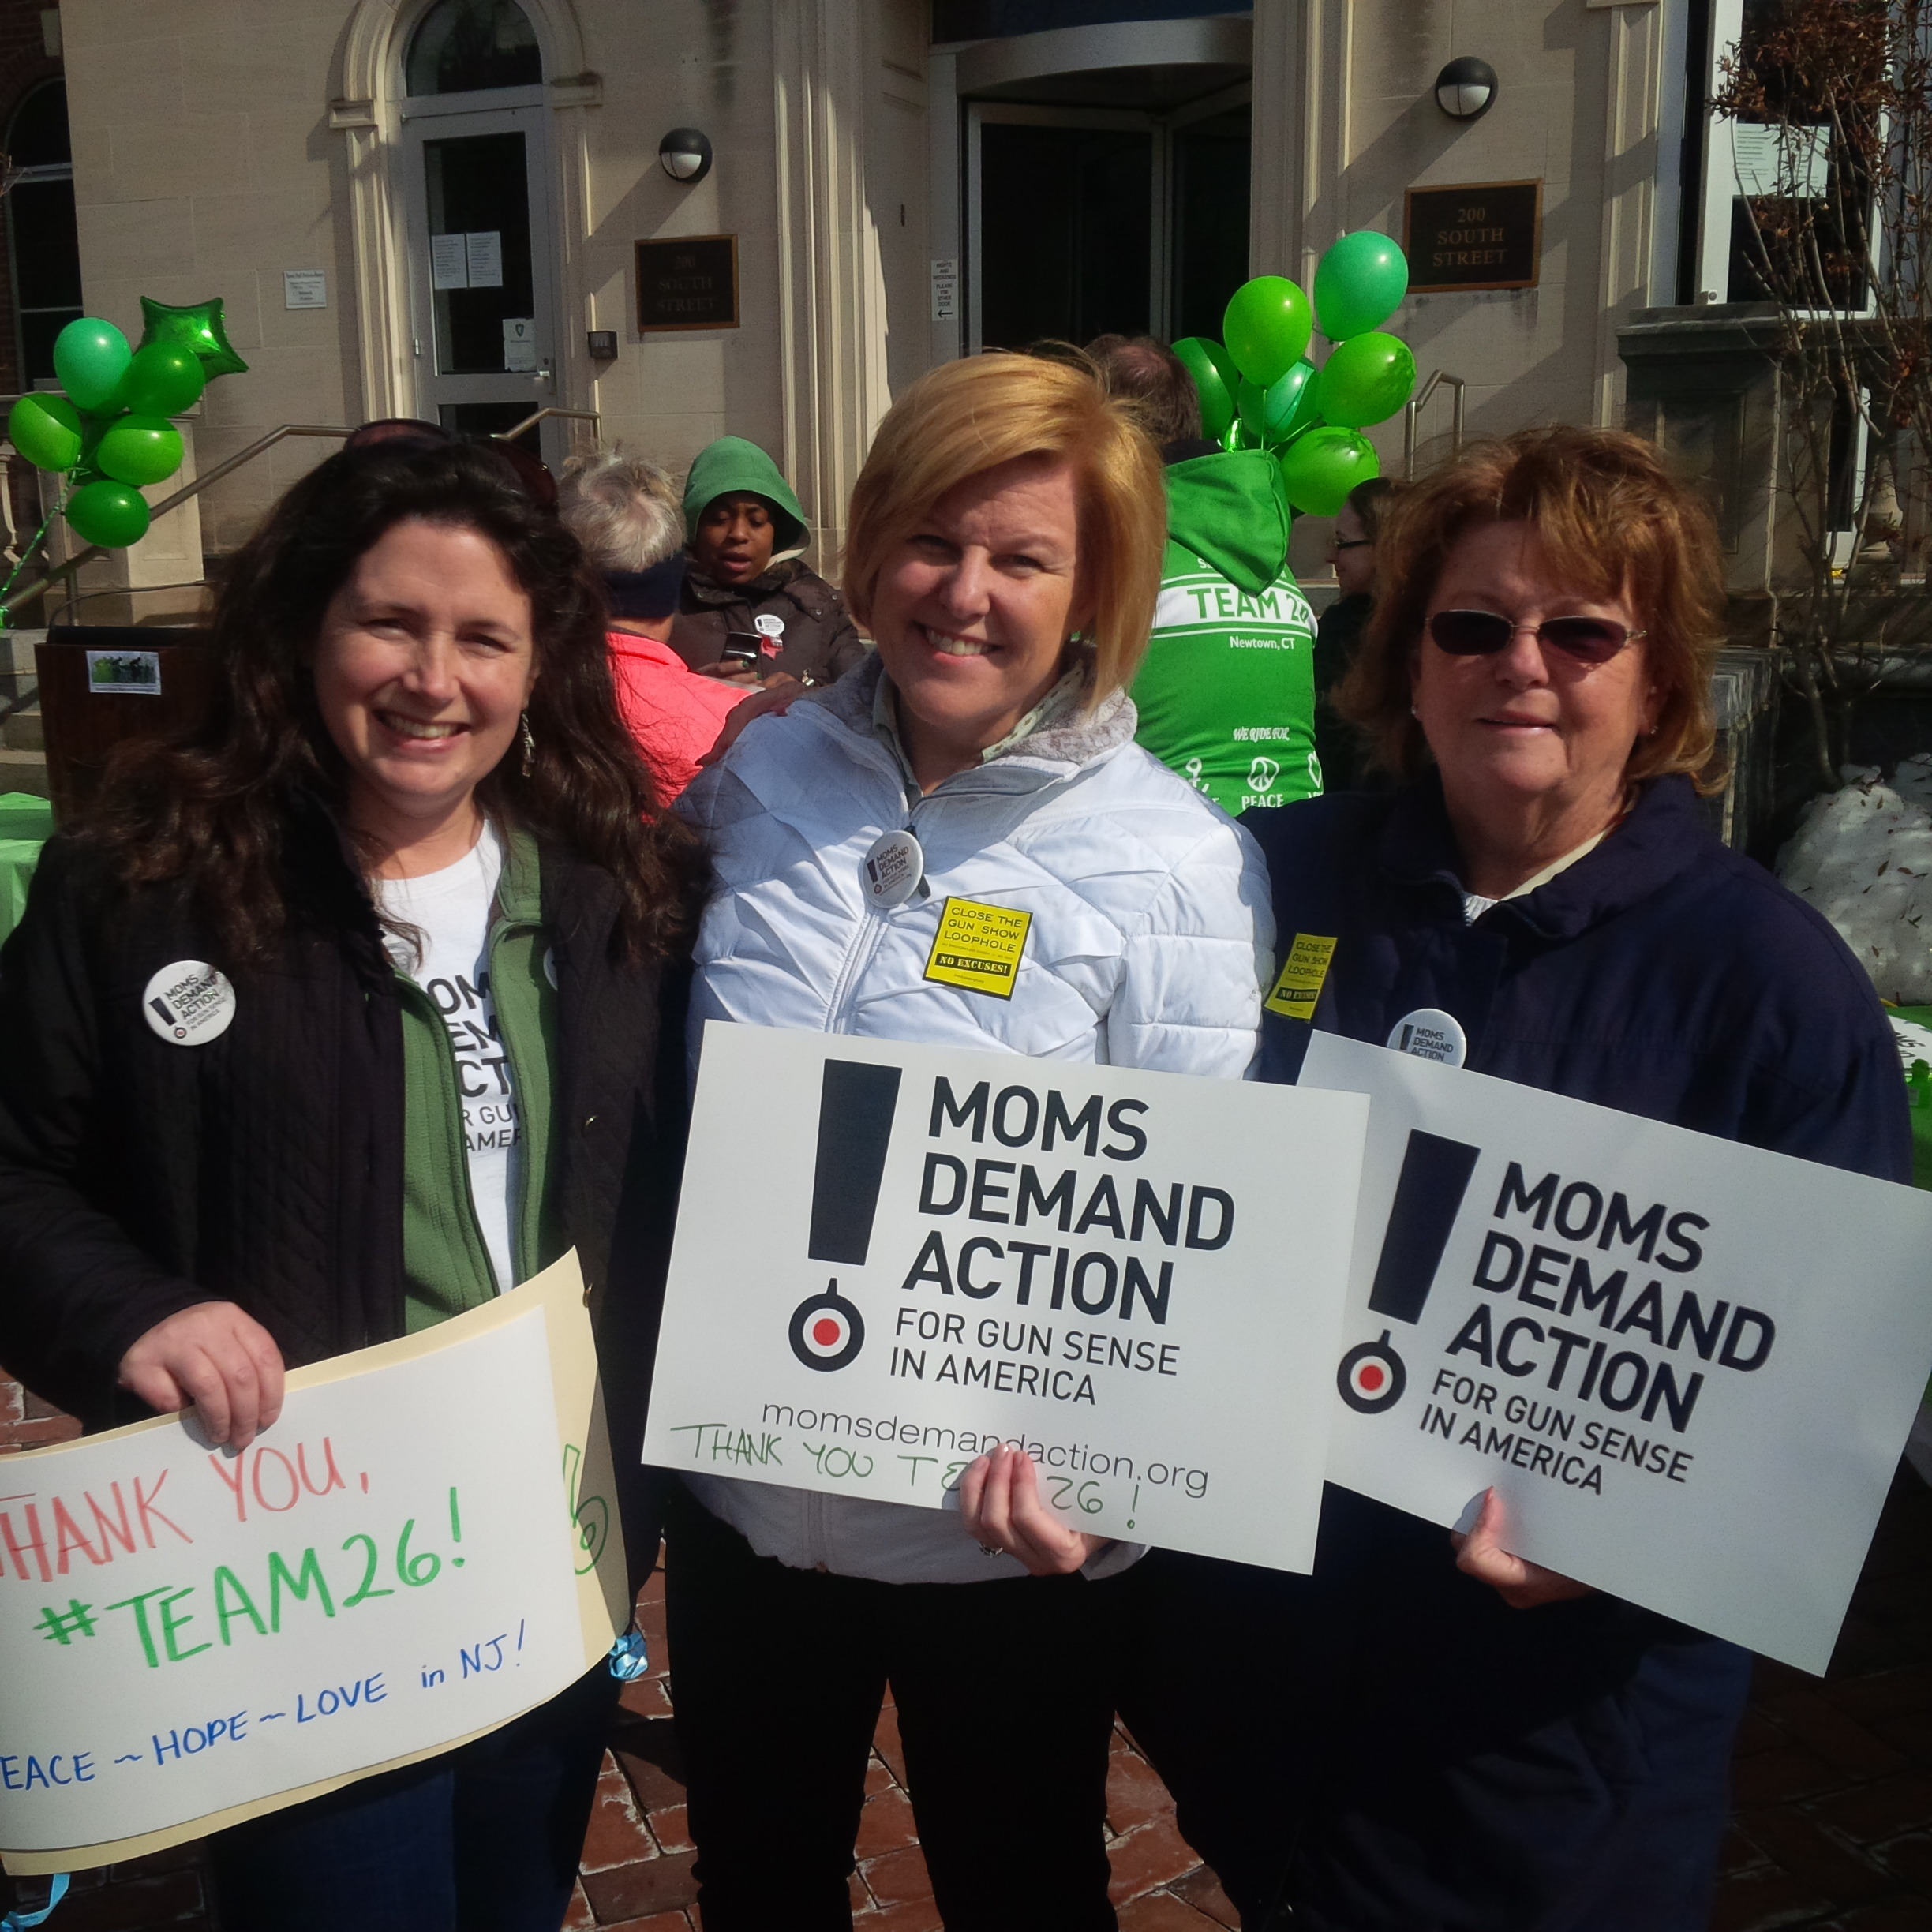 e7cdbdb3d26f248b9664_Colleen_Mahr_-_Moms_Demand_Action_-_Morristown__3-9-14.jpg